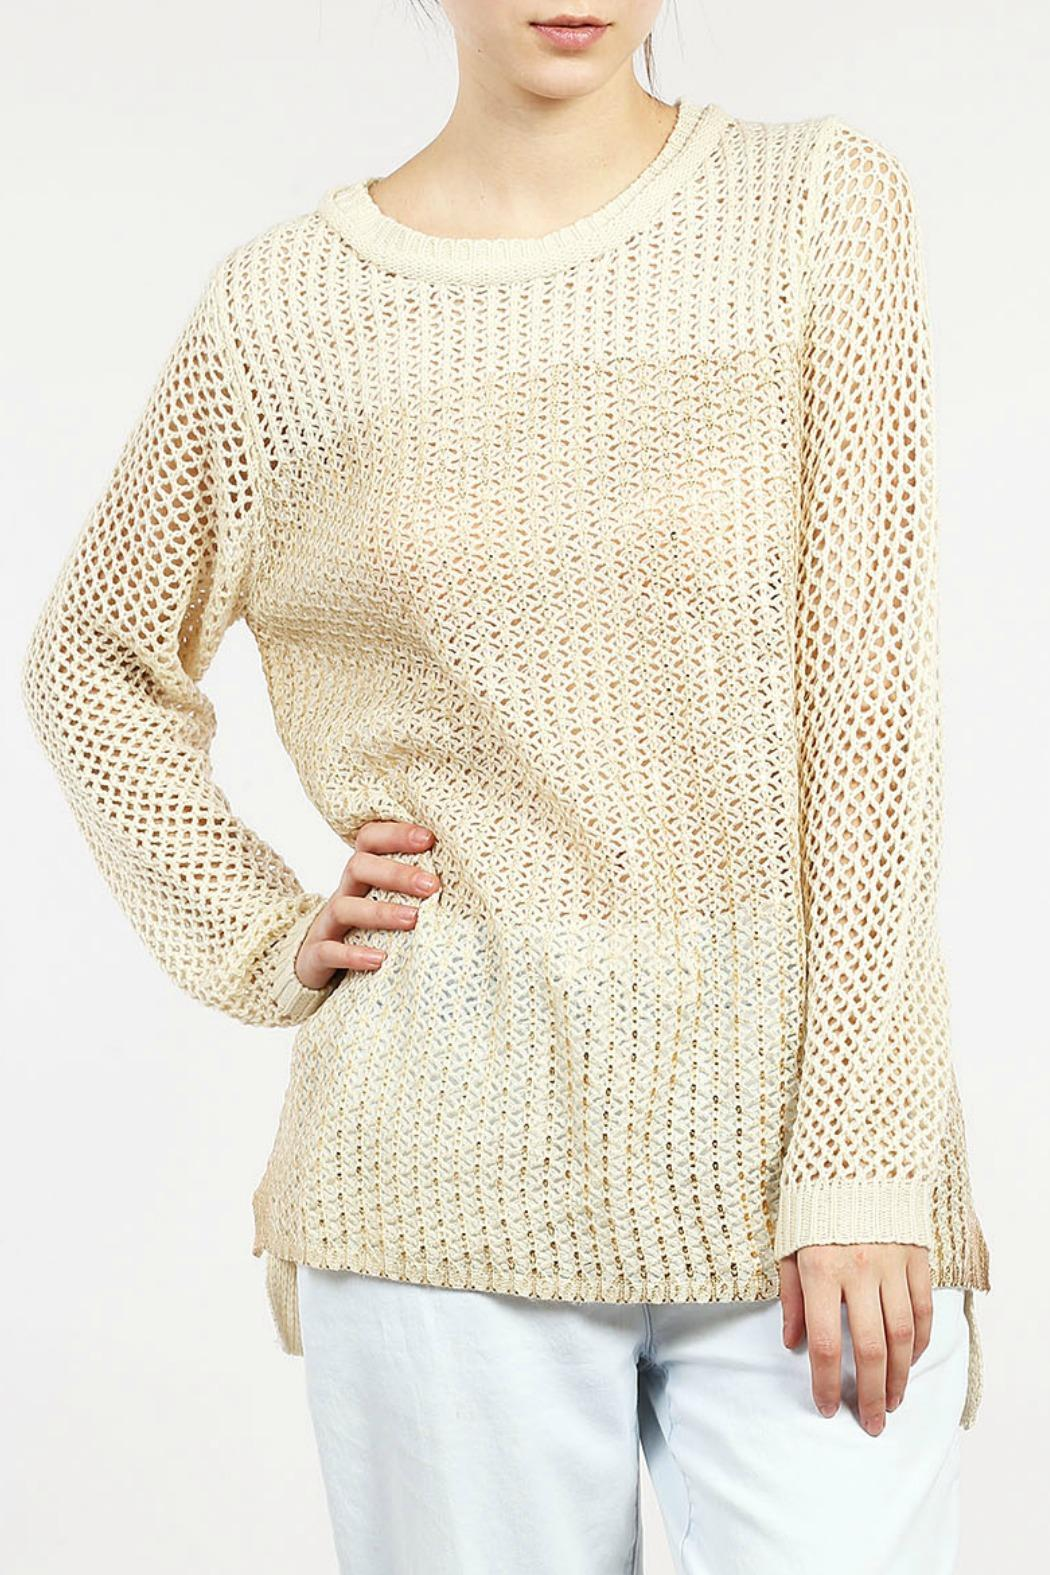 LoveRiche Gold Knit Sweater from Atlanta by GrayeStyle — Shoptiques